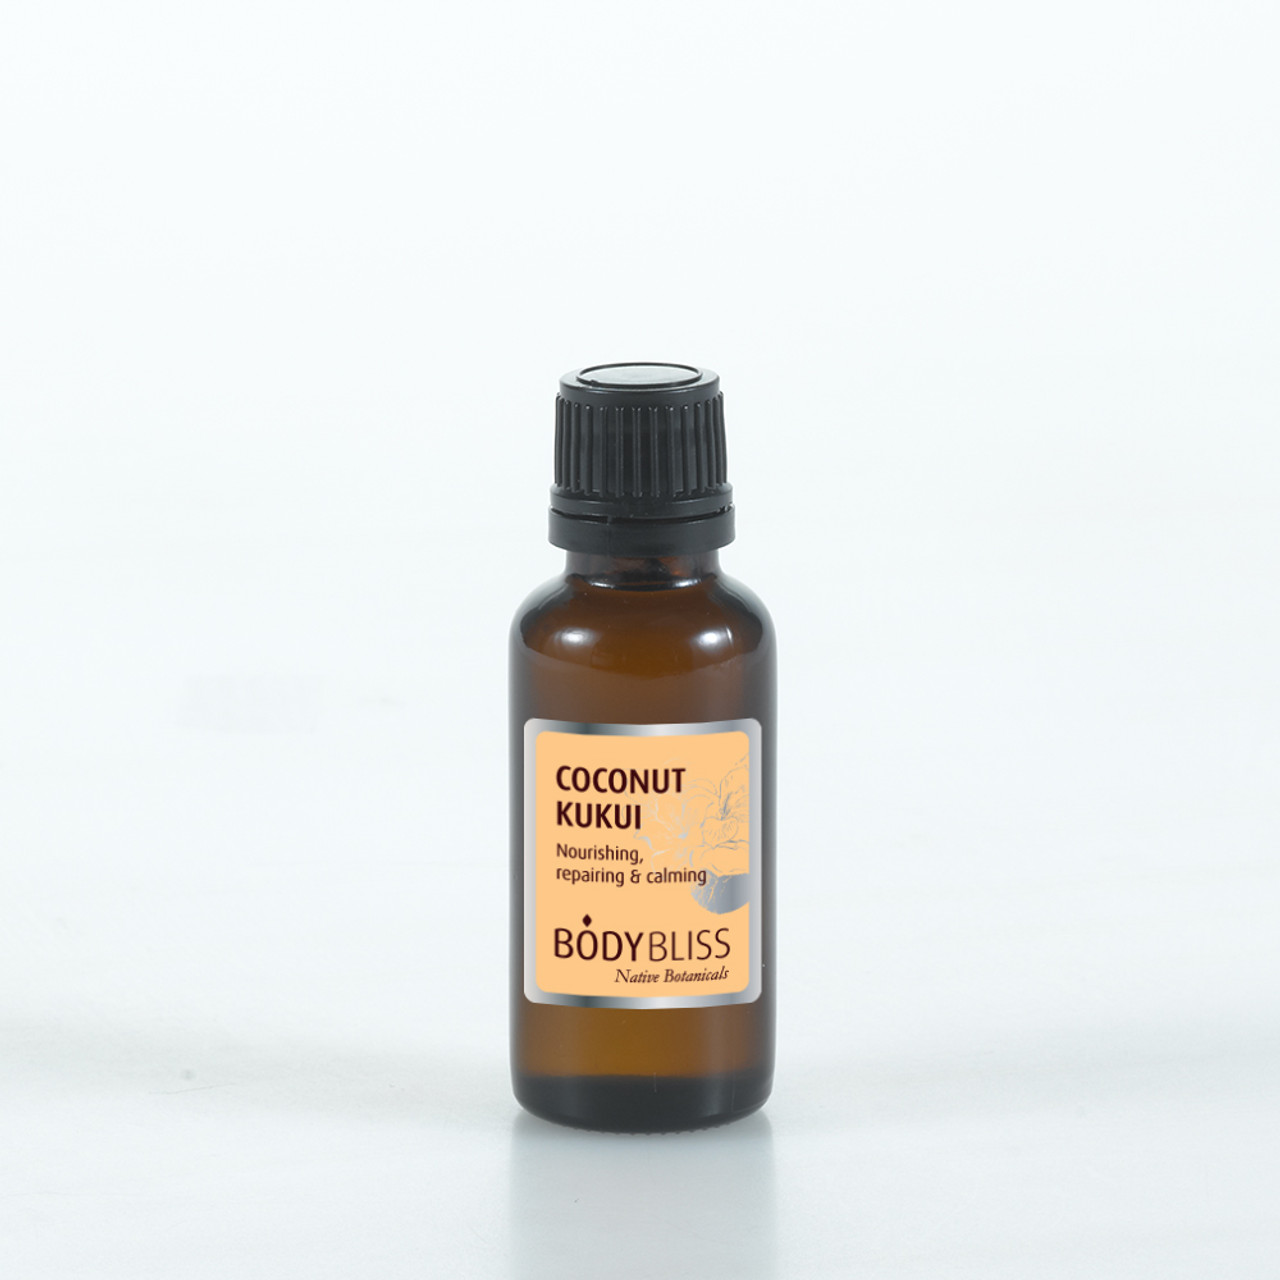 Coconut Kukui Essential Oil Blend